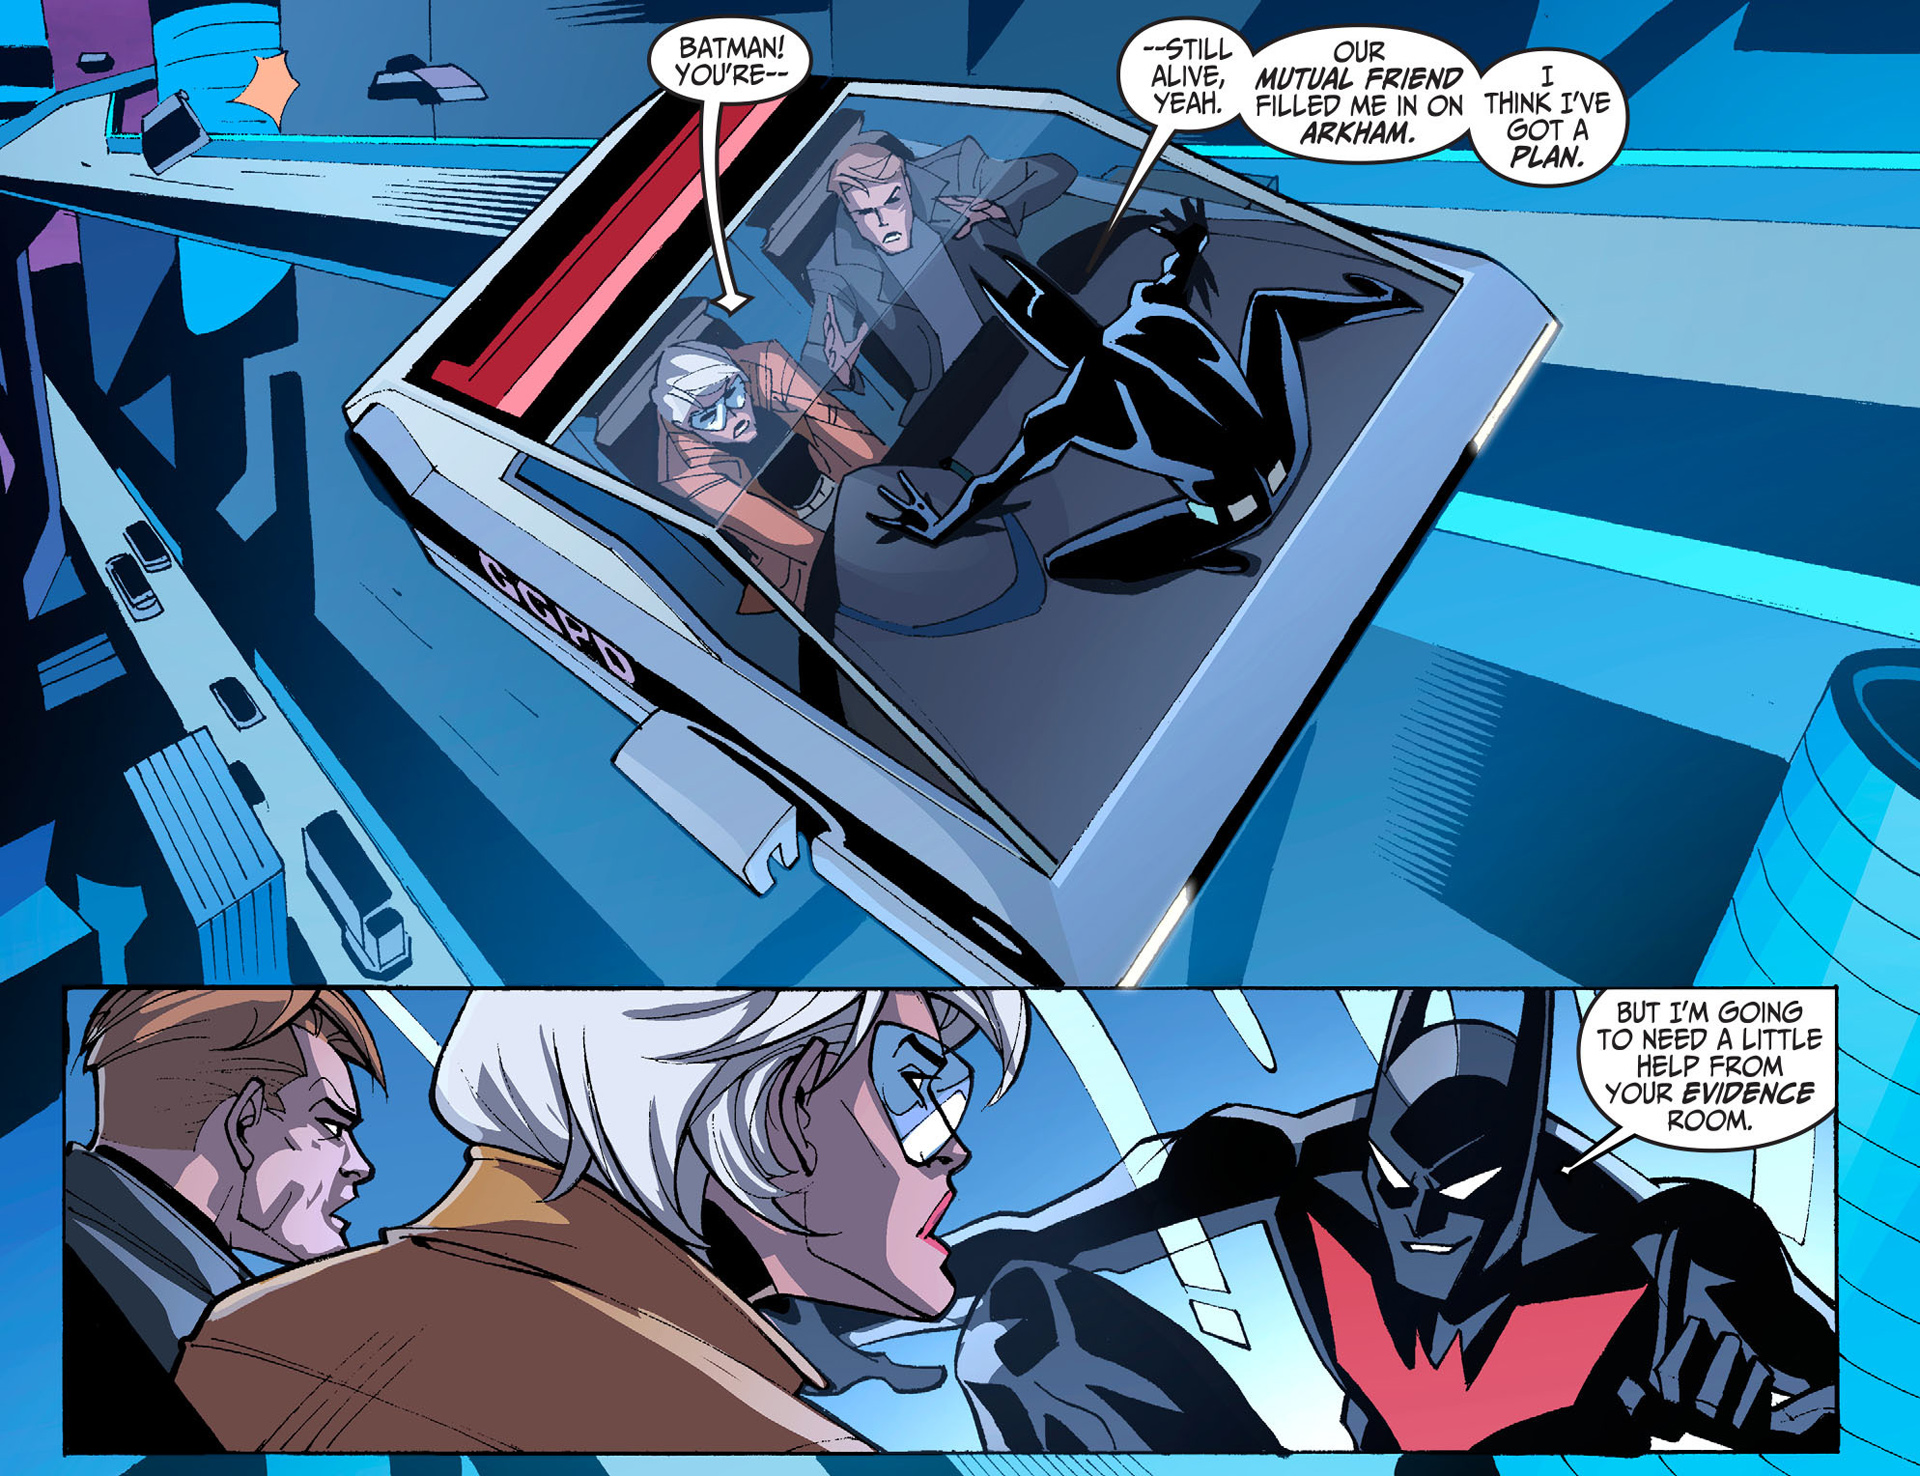 Batman Beyond 2.0 Issue #7 #7 - English 18